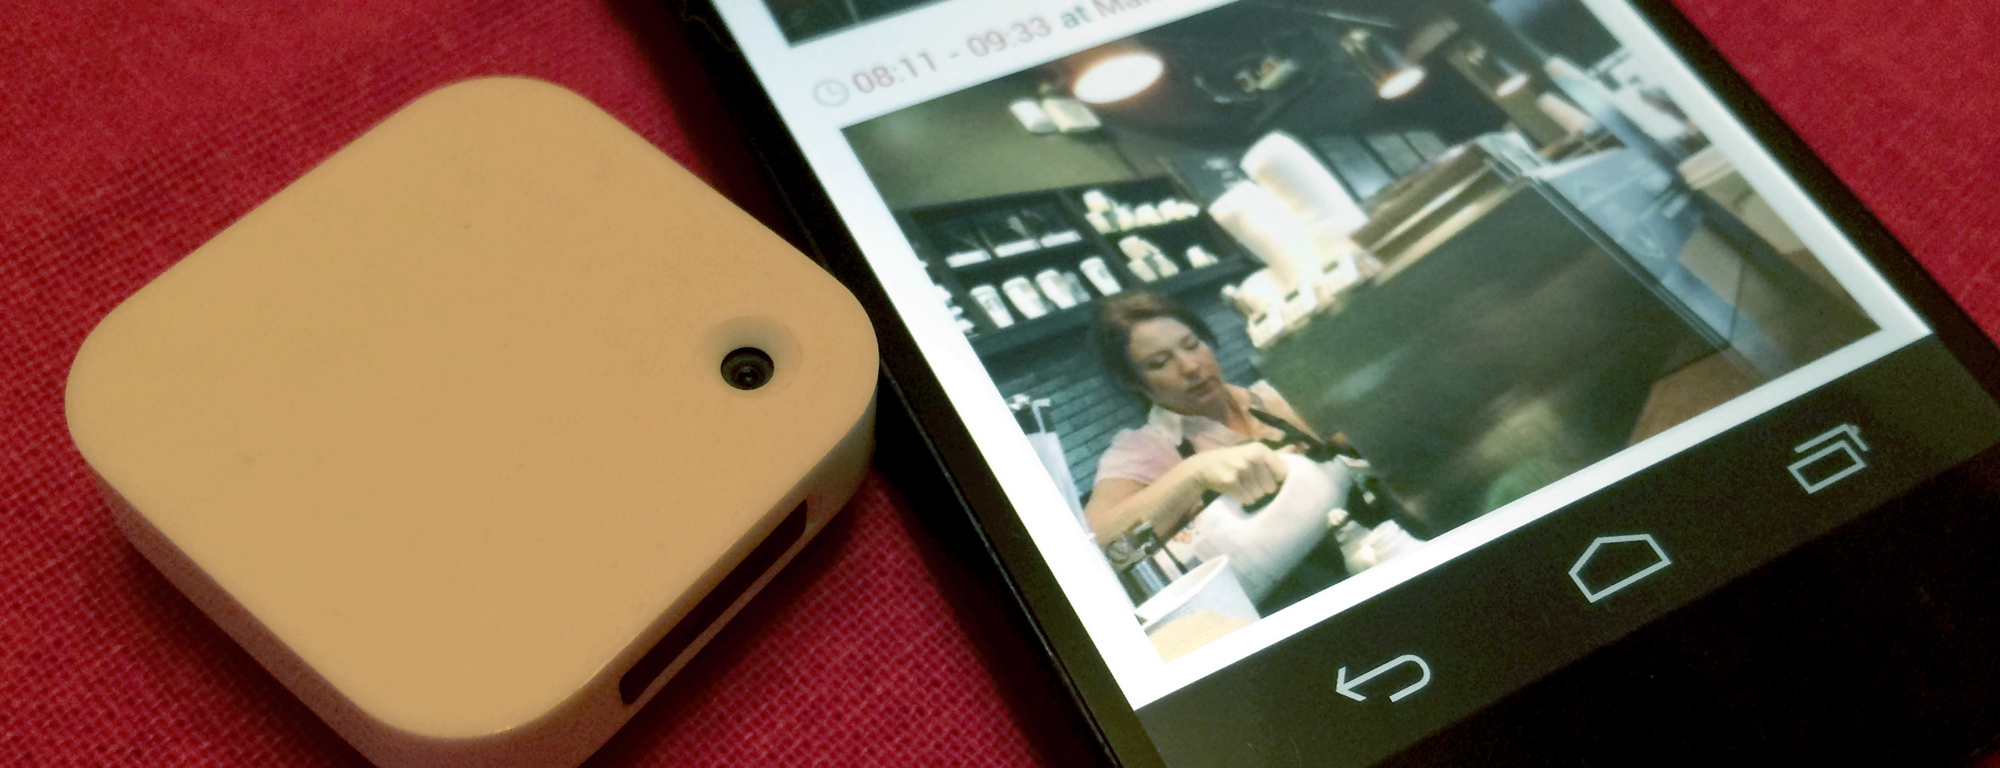 Narrative Clip Wearable Camera Review